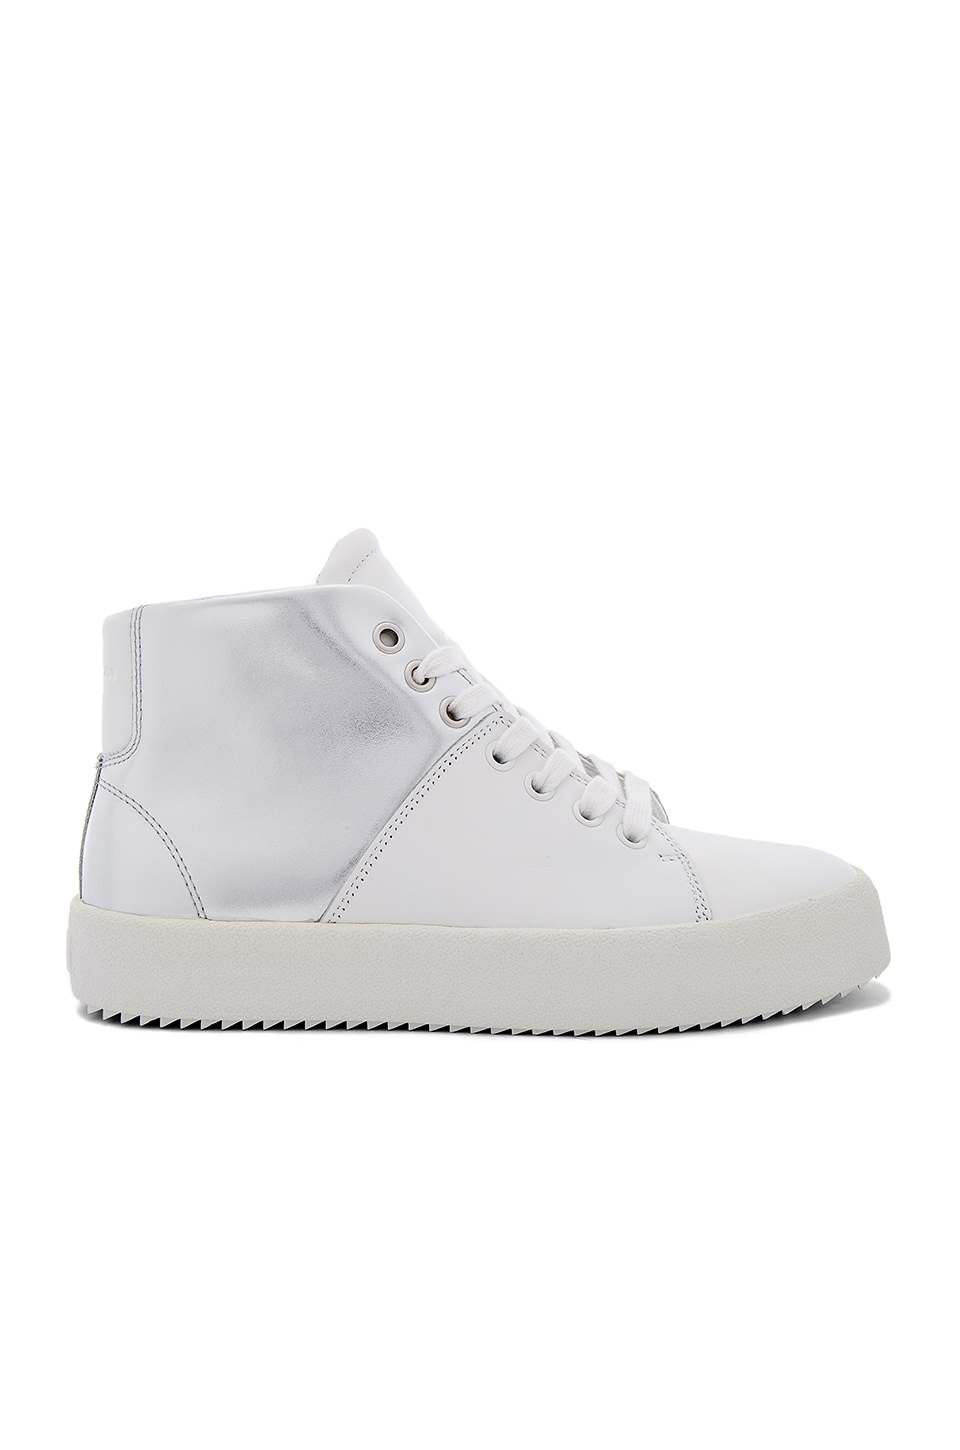 Dylan Sneaker by KENDALL + KYLIE